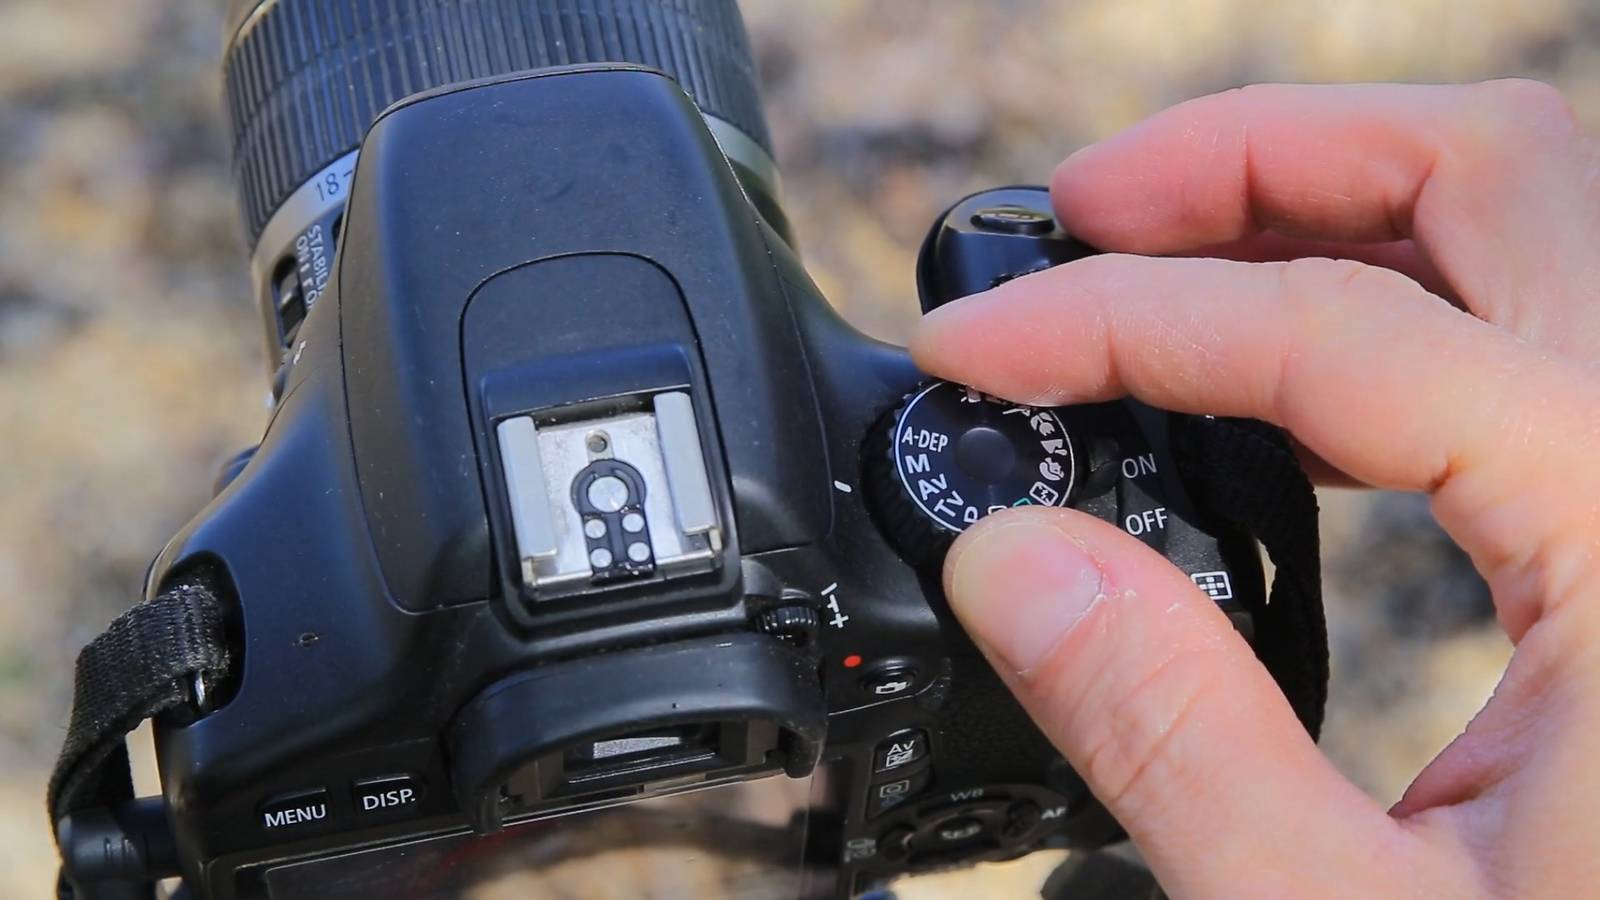 canon 550d in manual mode dial from top